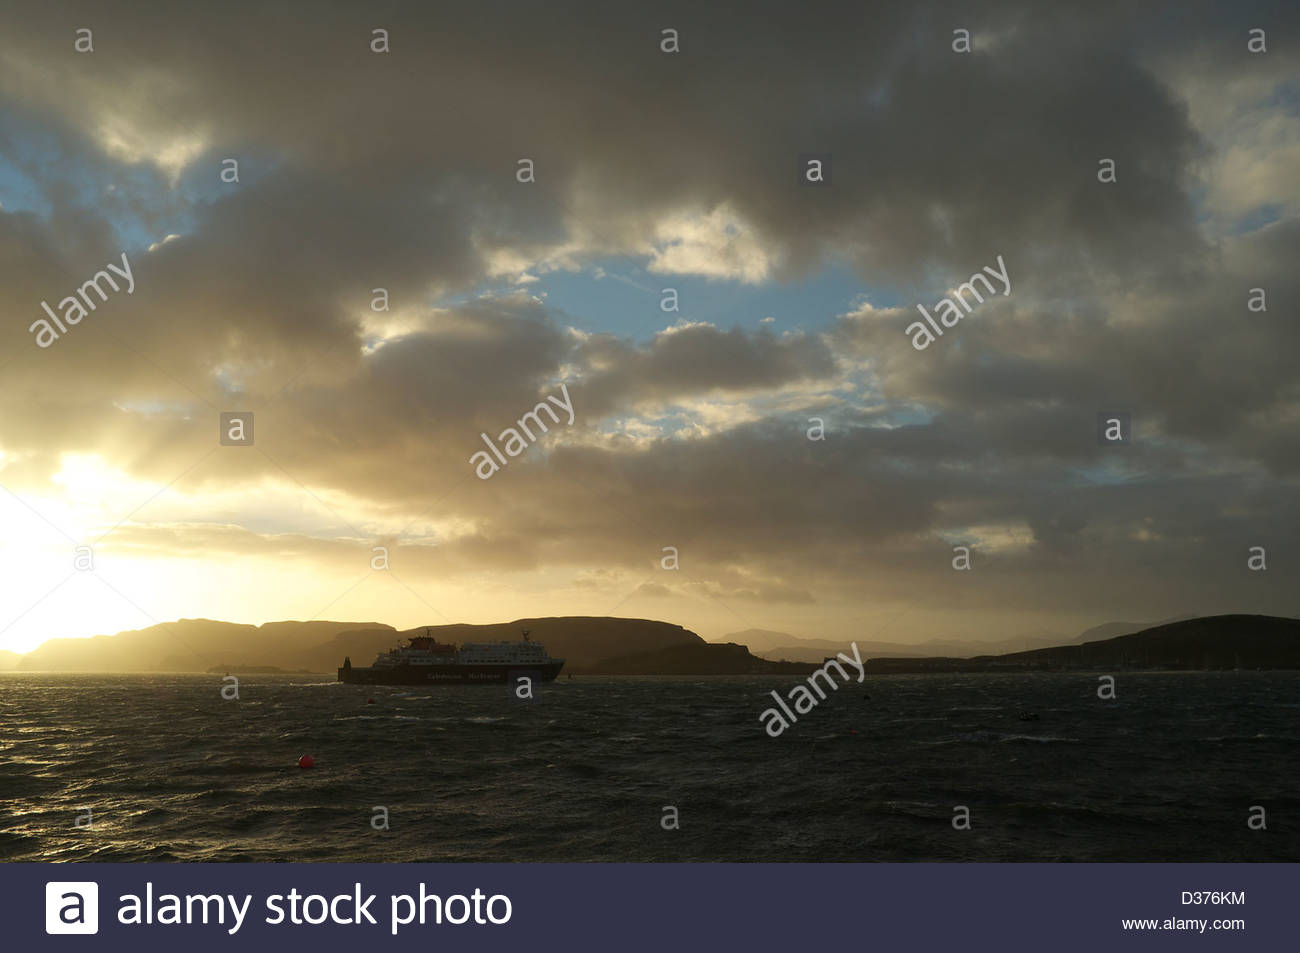 Calendonian MacBrayne ferry leaving Oban, during a windy winter's afternoon, Scotland, UK. - Stock Image